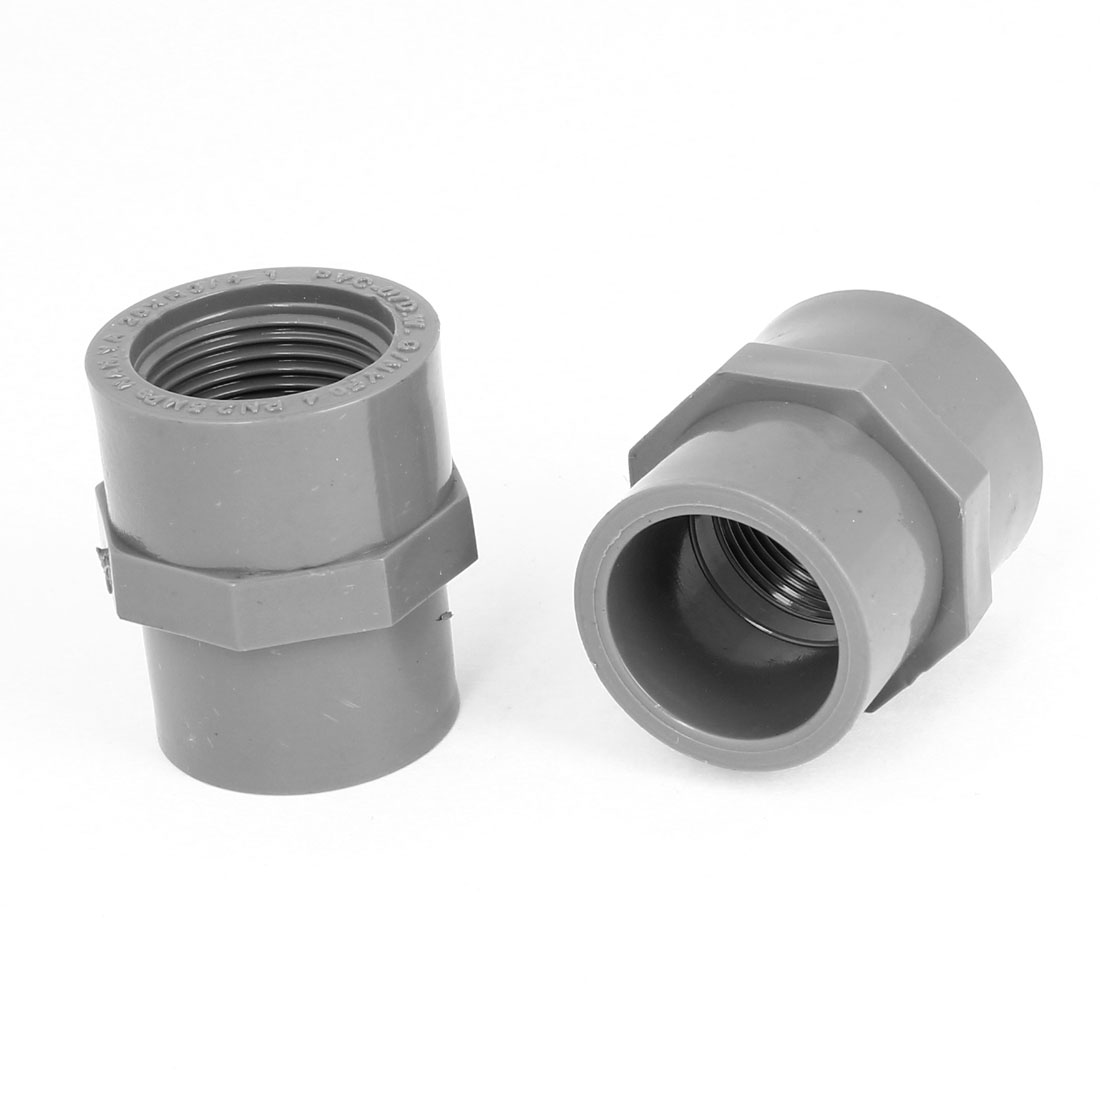 2PCS 25mm Female Threaded PVC Straight Water Hose Piping Connectors Coupler Gray